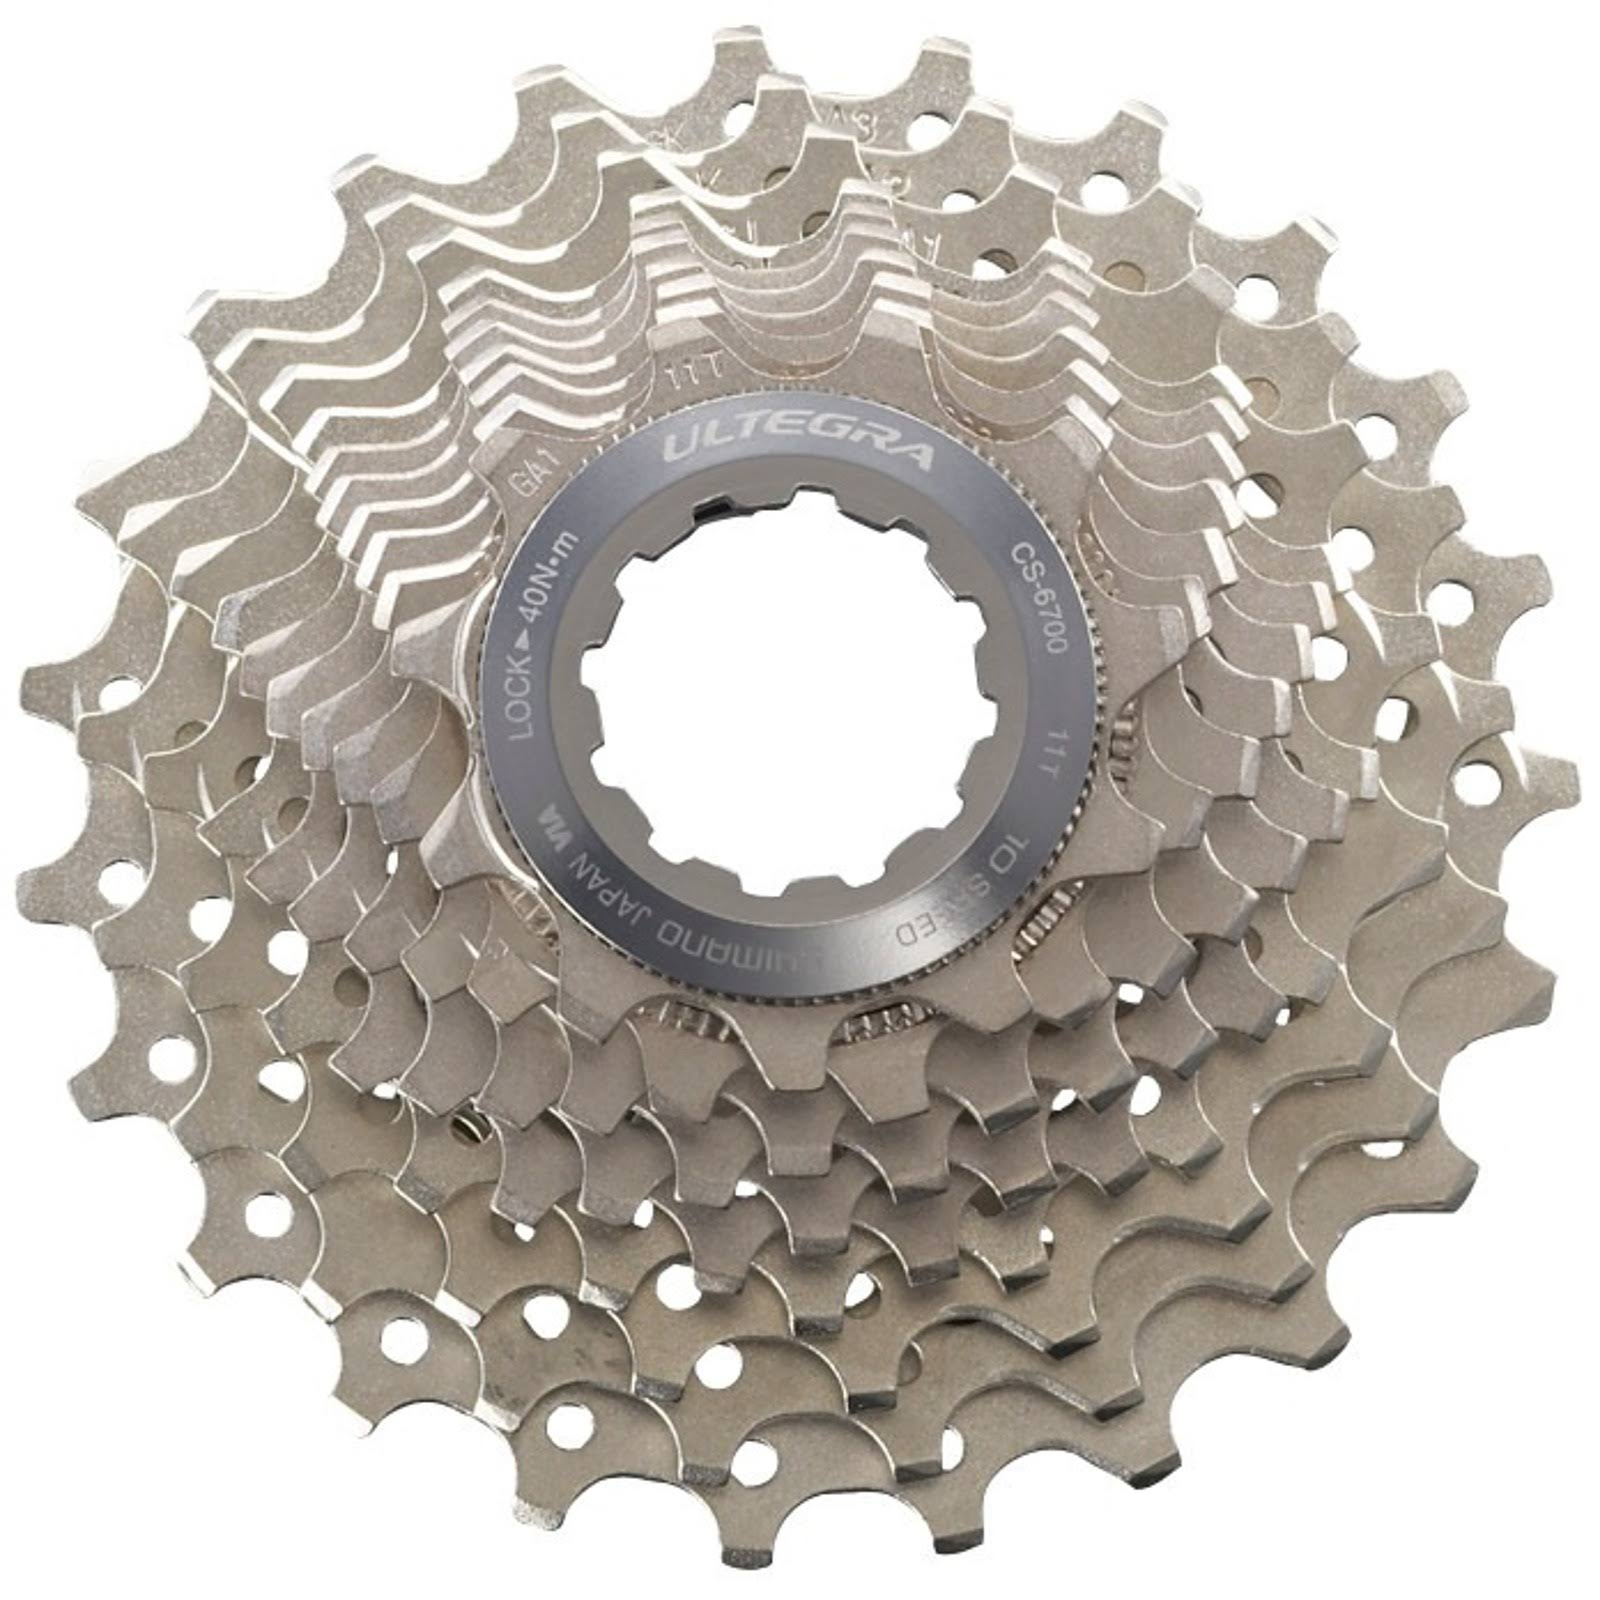 Shimano Ultegra Bicycle Cassette - 10 Speed, 12-25T